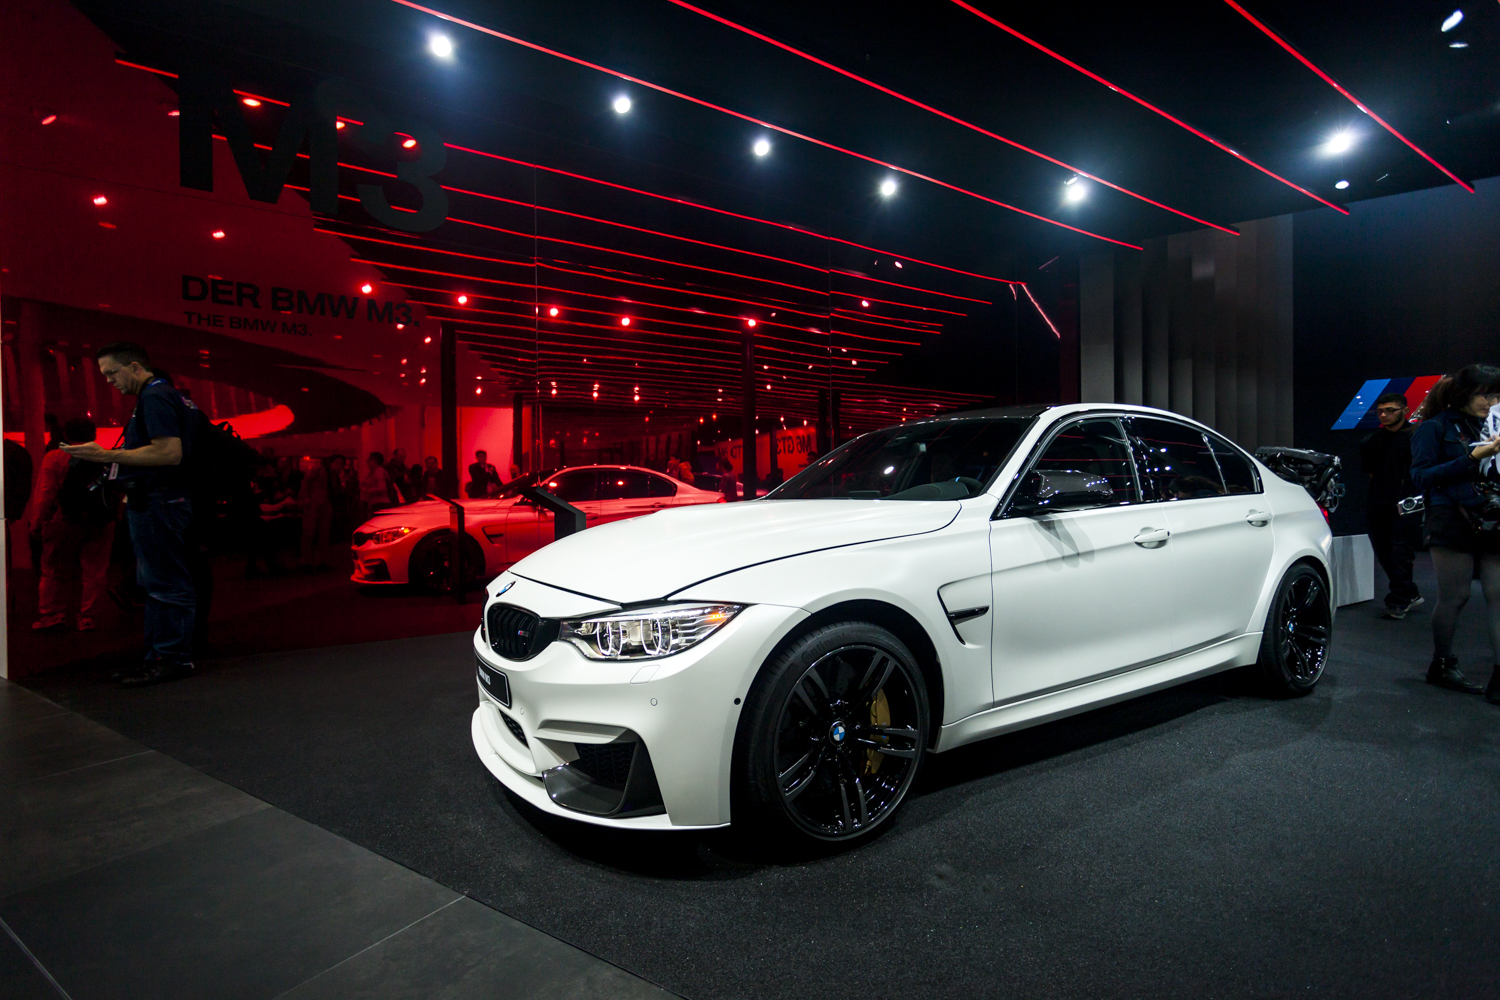 2015 M3 For Sale >> IAA 2015: BMW M3 Facelift